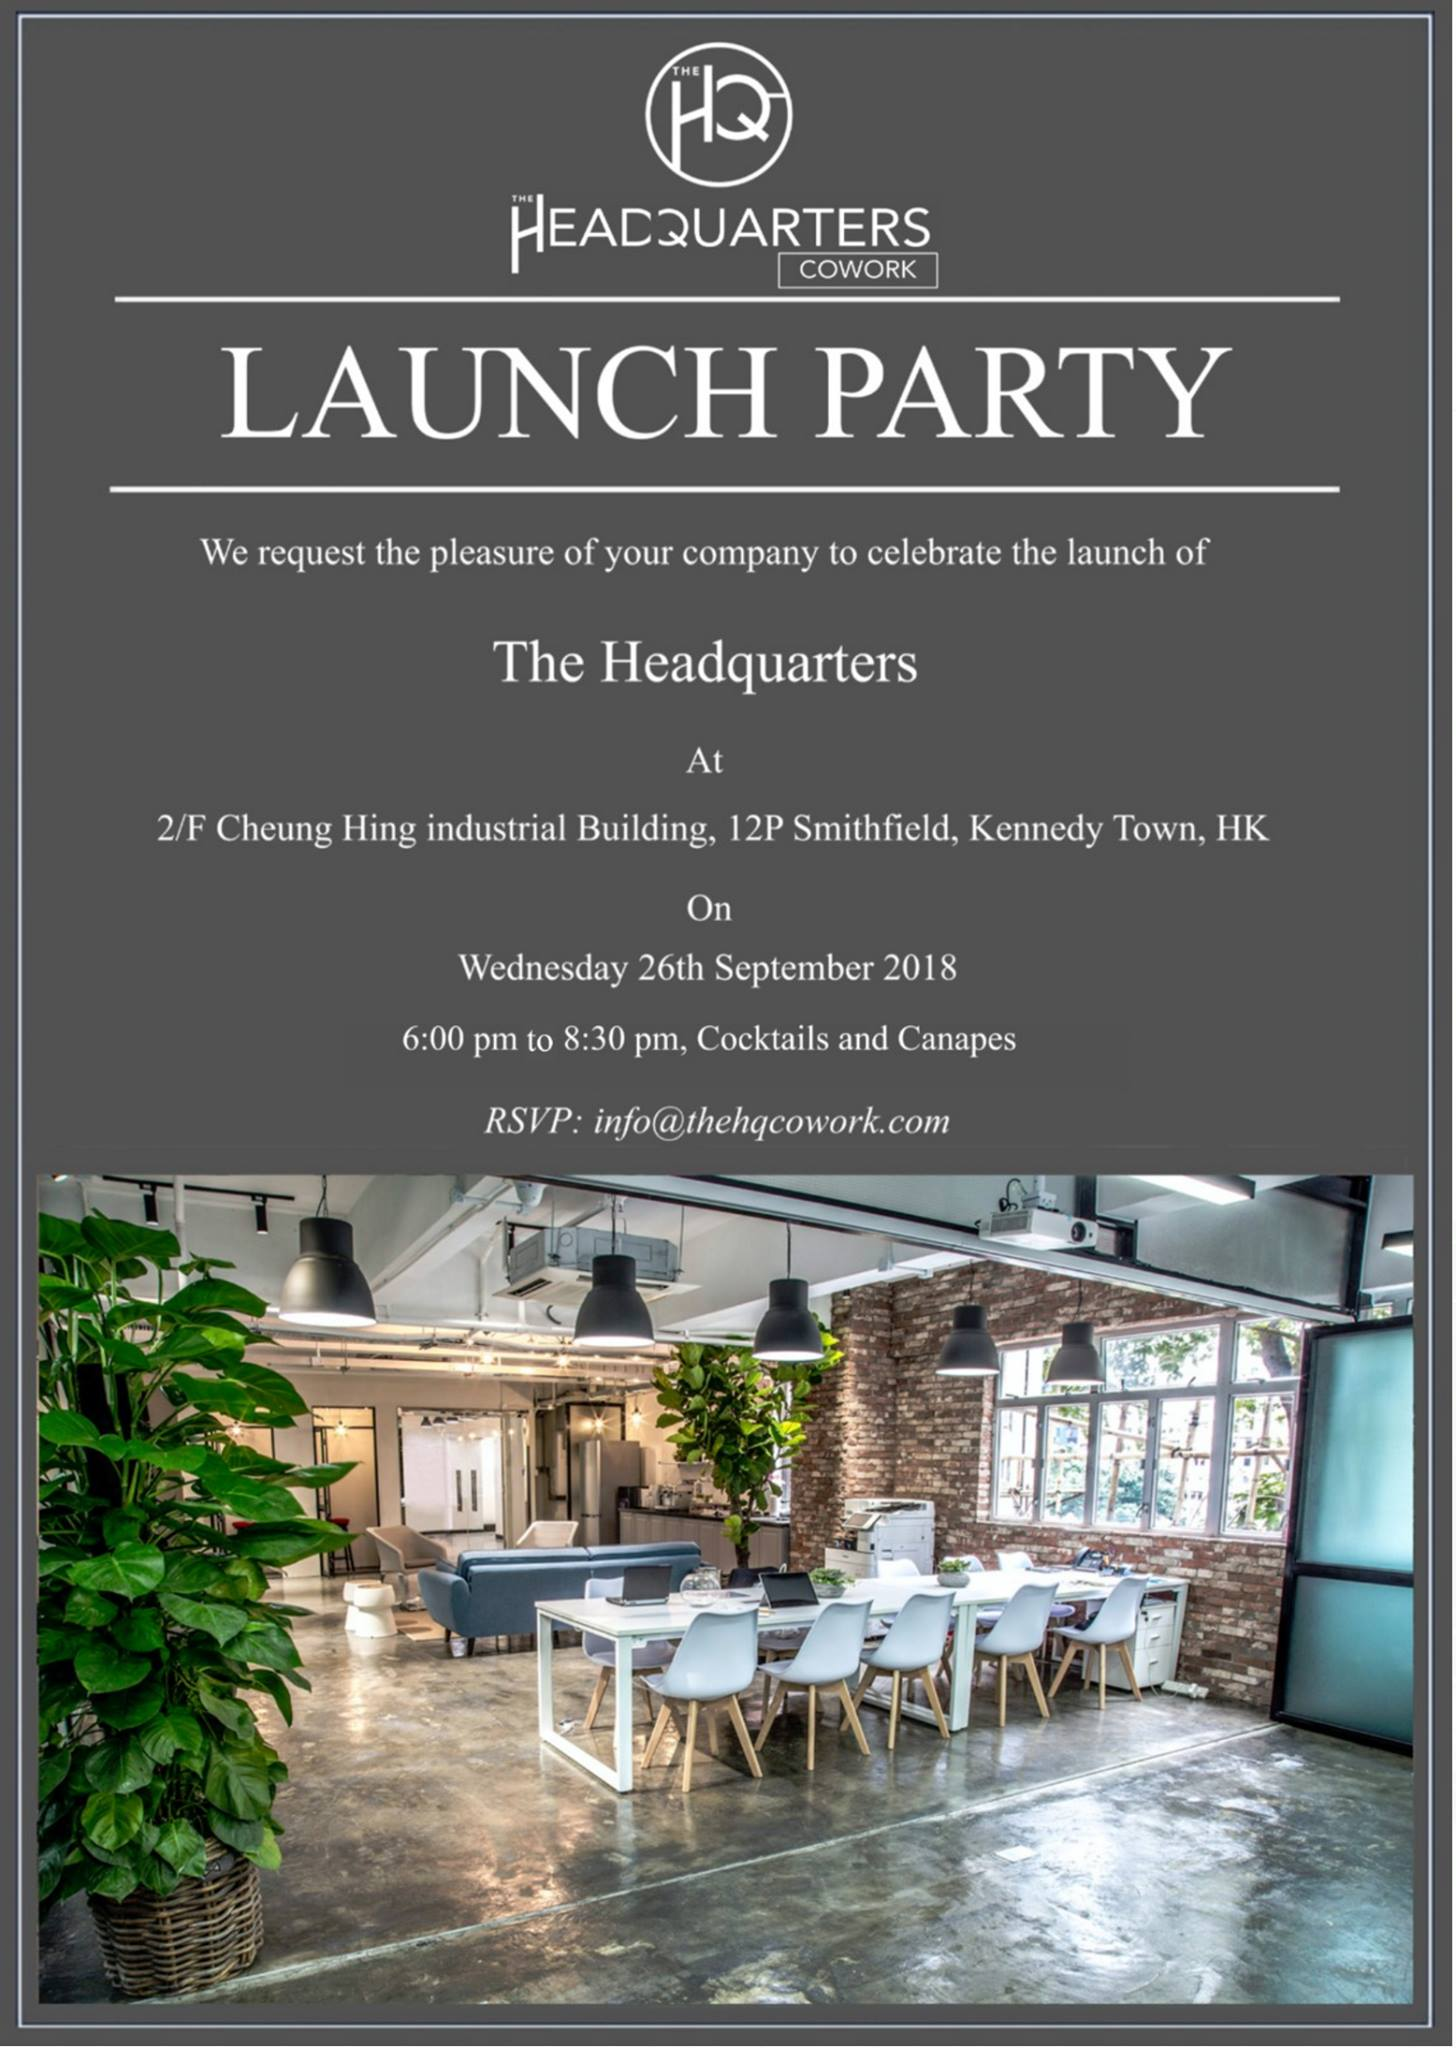 The HQ CoWork Launch Party - Wed 6pm to 8:30pm on 26Sep2018